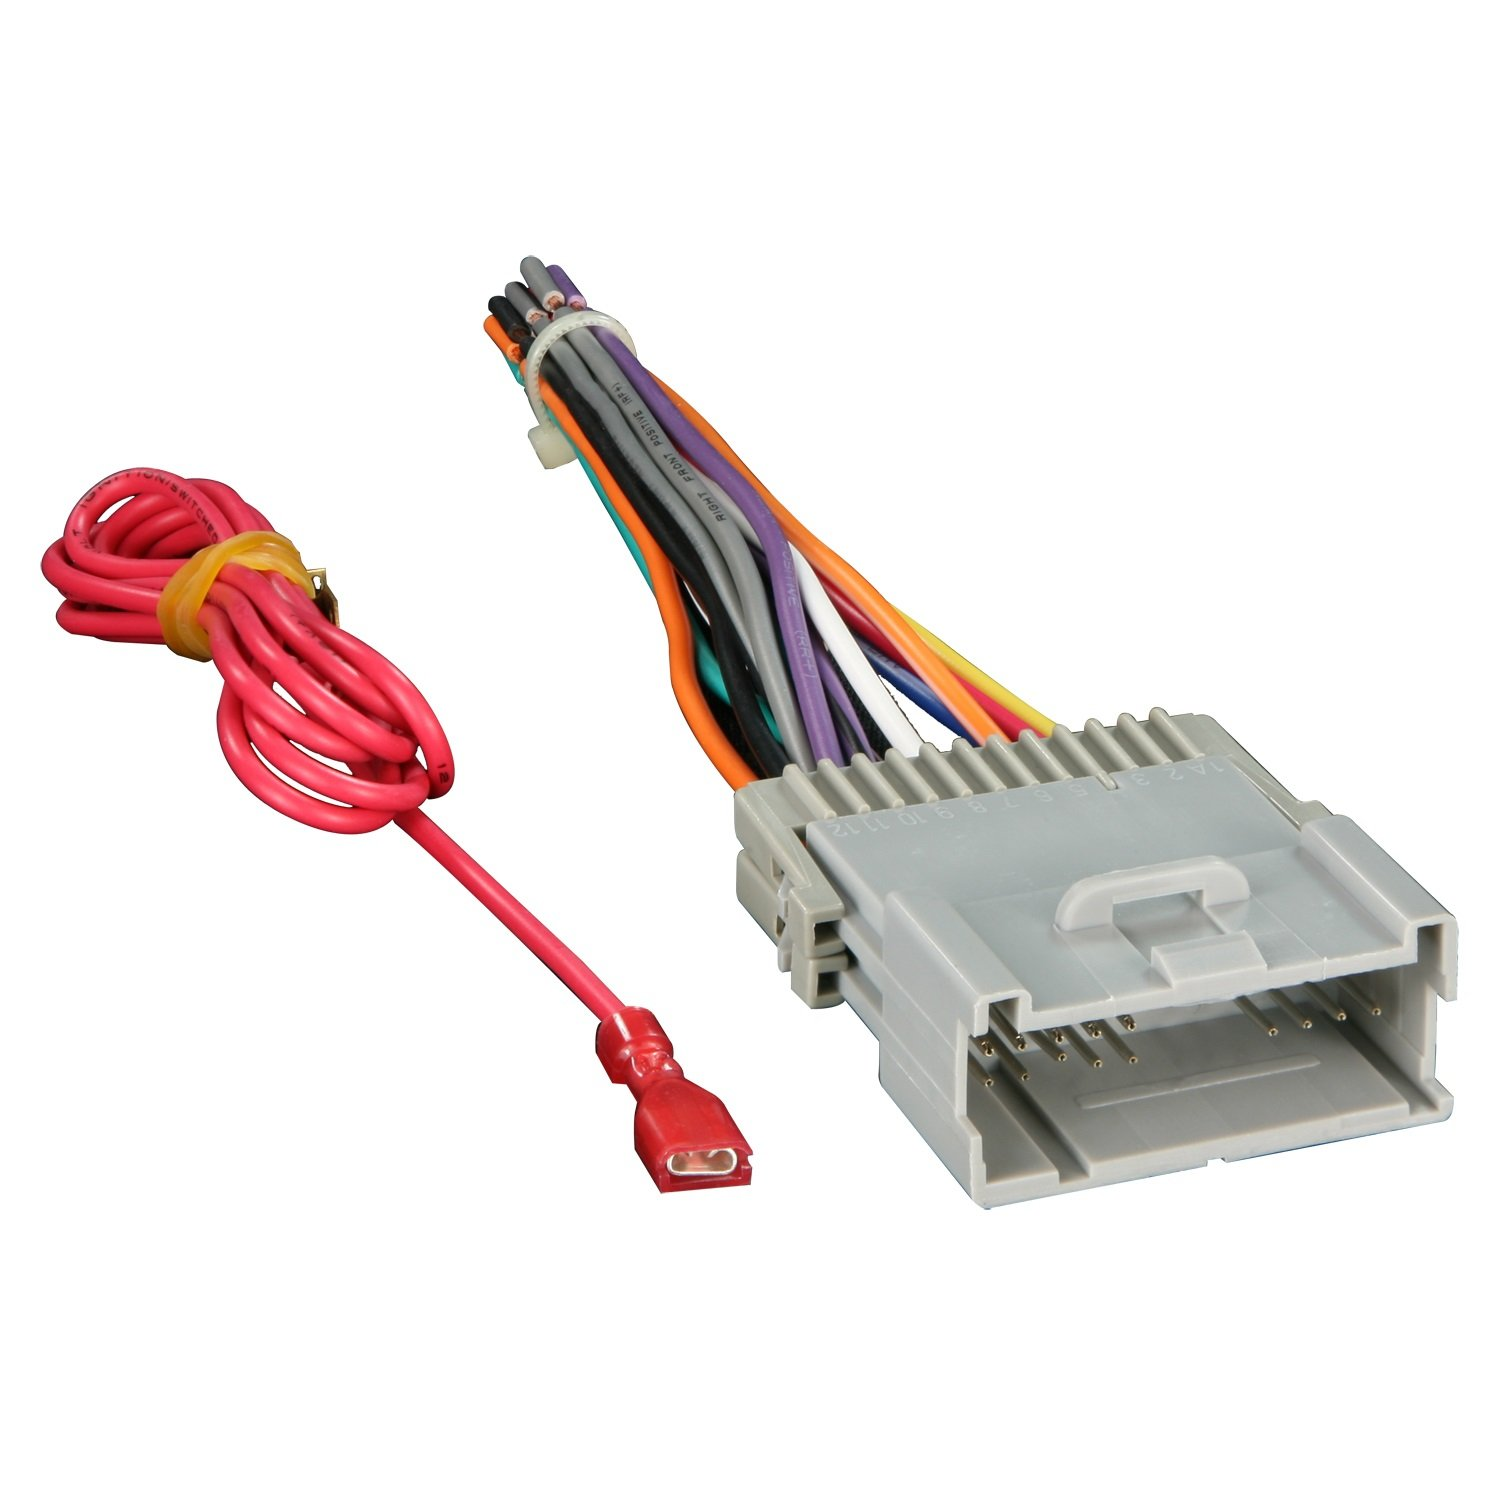 61eewxp9orL._SL1500_ amazon com metra 70 2003 radio wiring harness for gm 98 08 what wiring harness do i need for my car at couponss.co